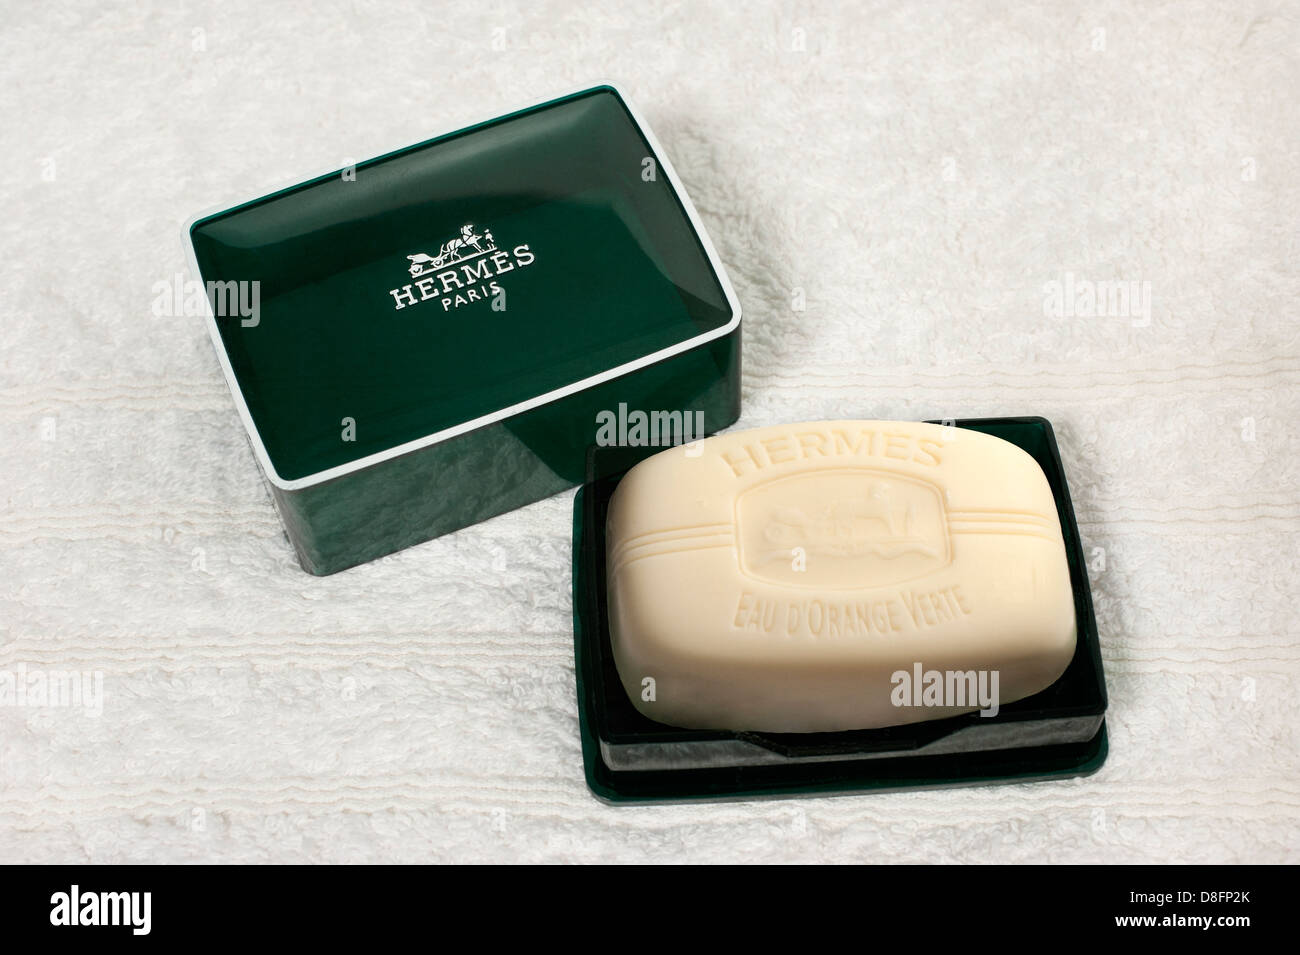 Luxury bar of perfumed hand soap by Hermes on a white towel Stock Photo